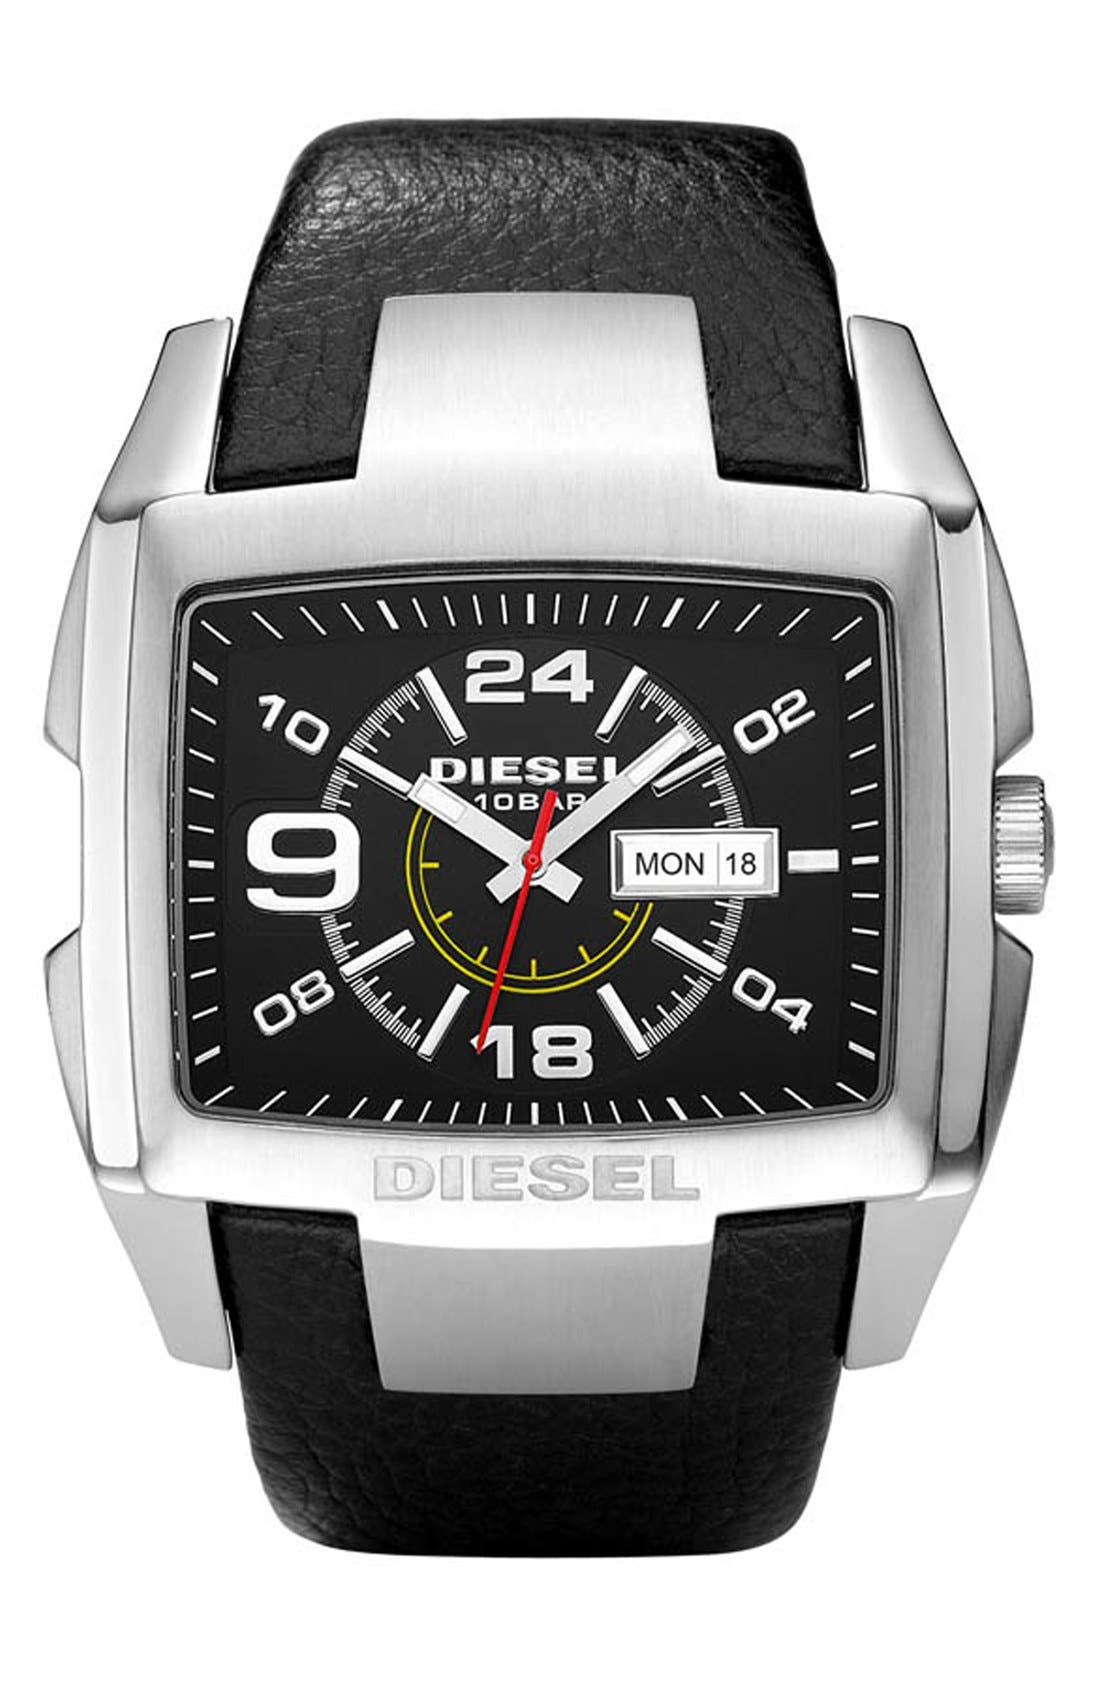 Main Image - DIESEL® 'Bugout' Layered Dial Watch, 54mm x 49mm